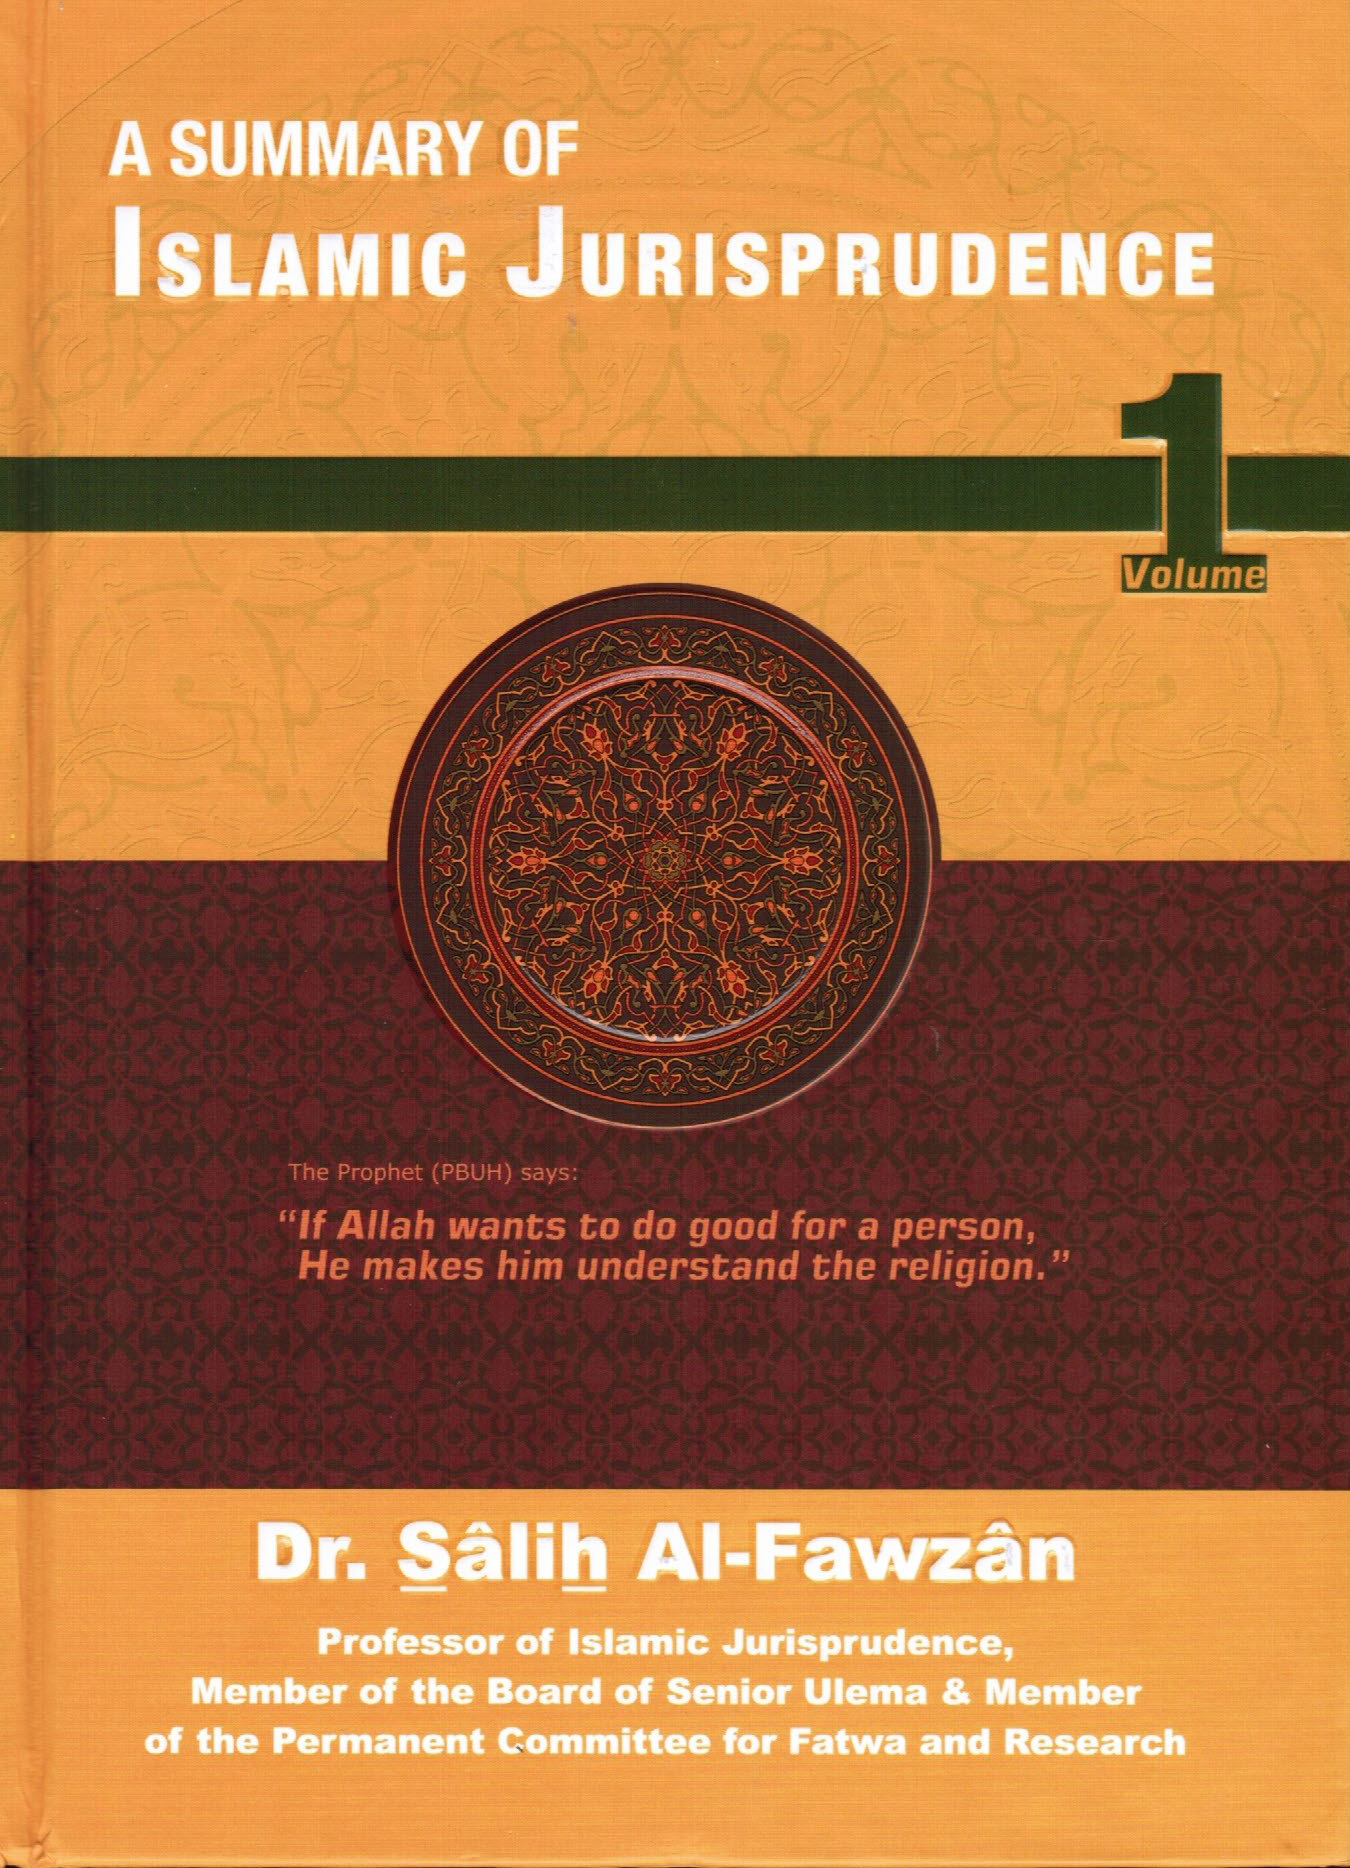 A Summary of Islamic Jurisprudence-Volume1